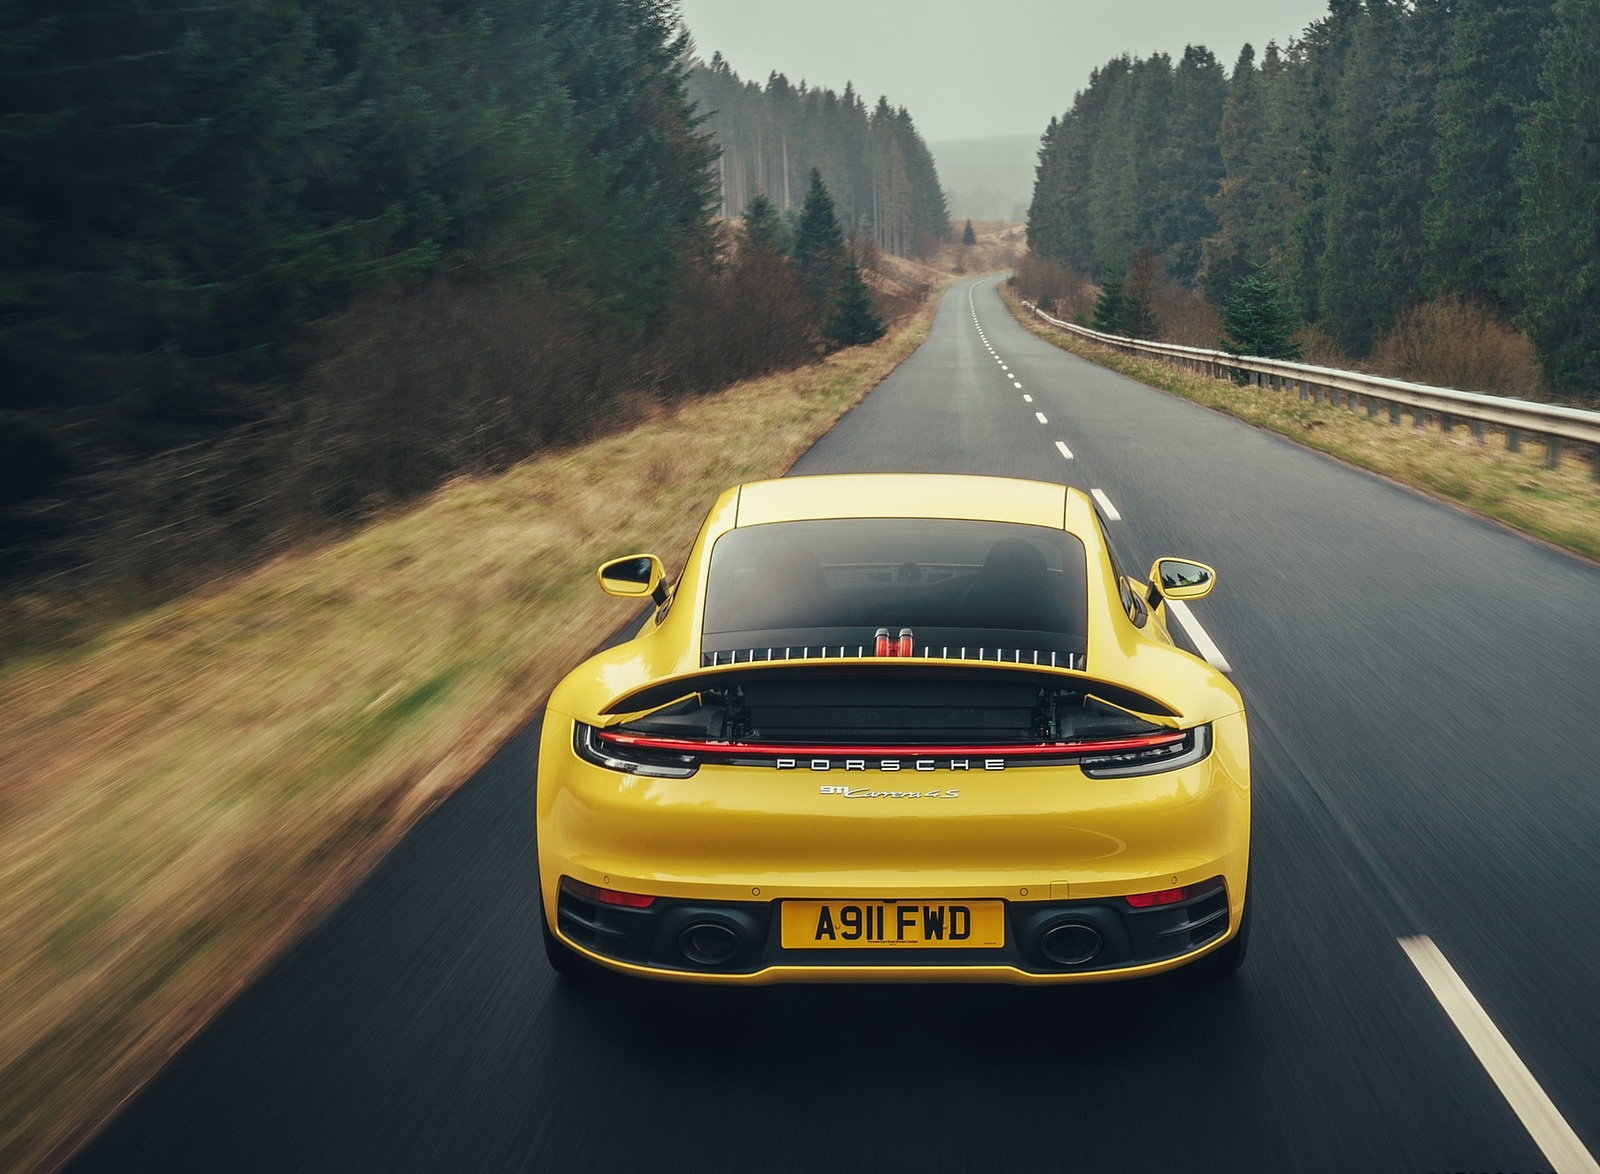 2019 Porsche 911 (992) Carrera 4S (UK-Spec) Rear Wallpaper (5)